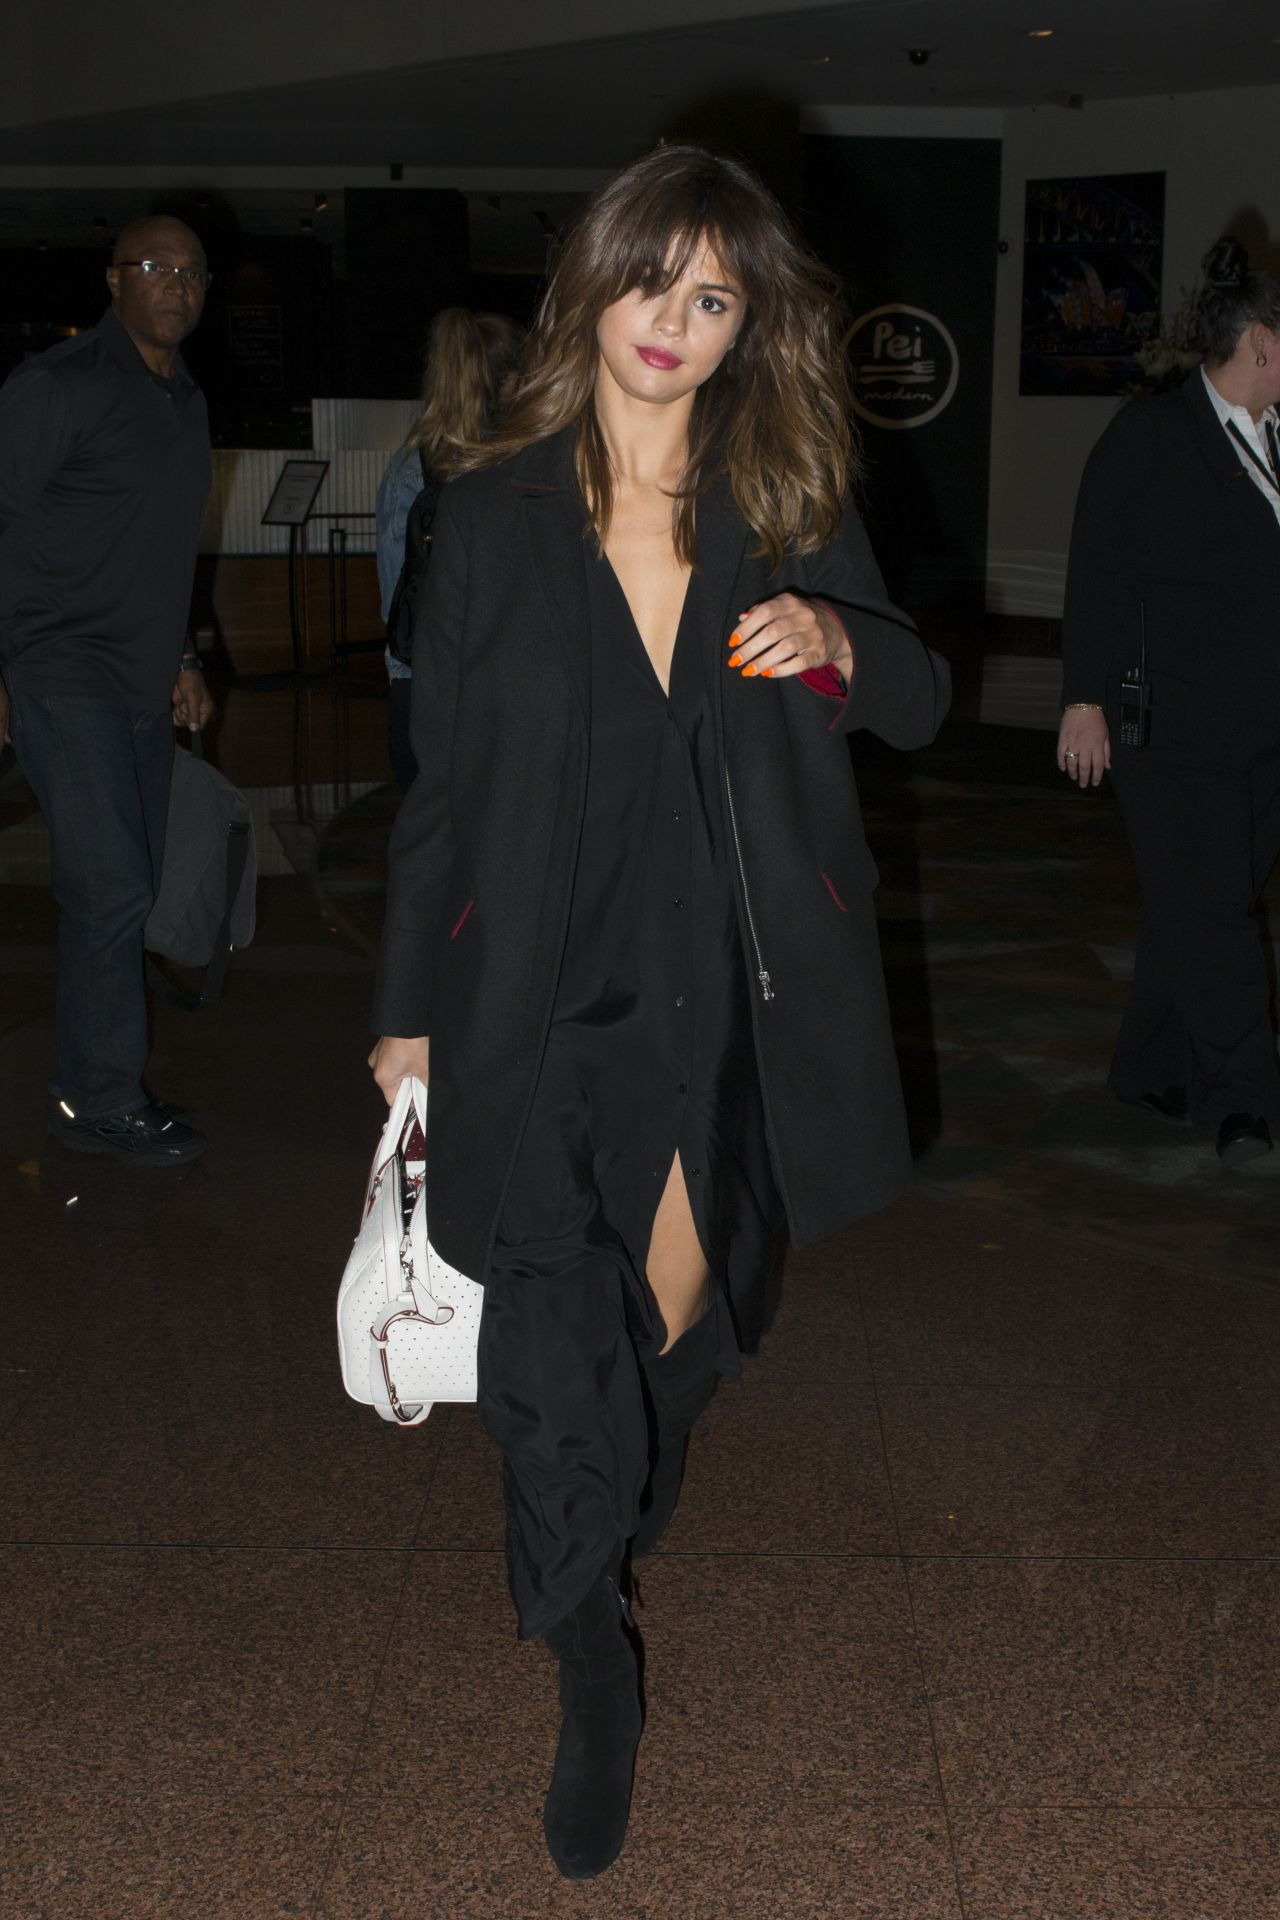 Selena gomez night out style at the park side restaurant in queens nyc nudes (19 pictures)